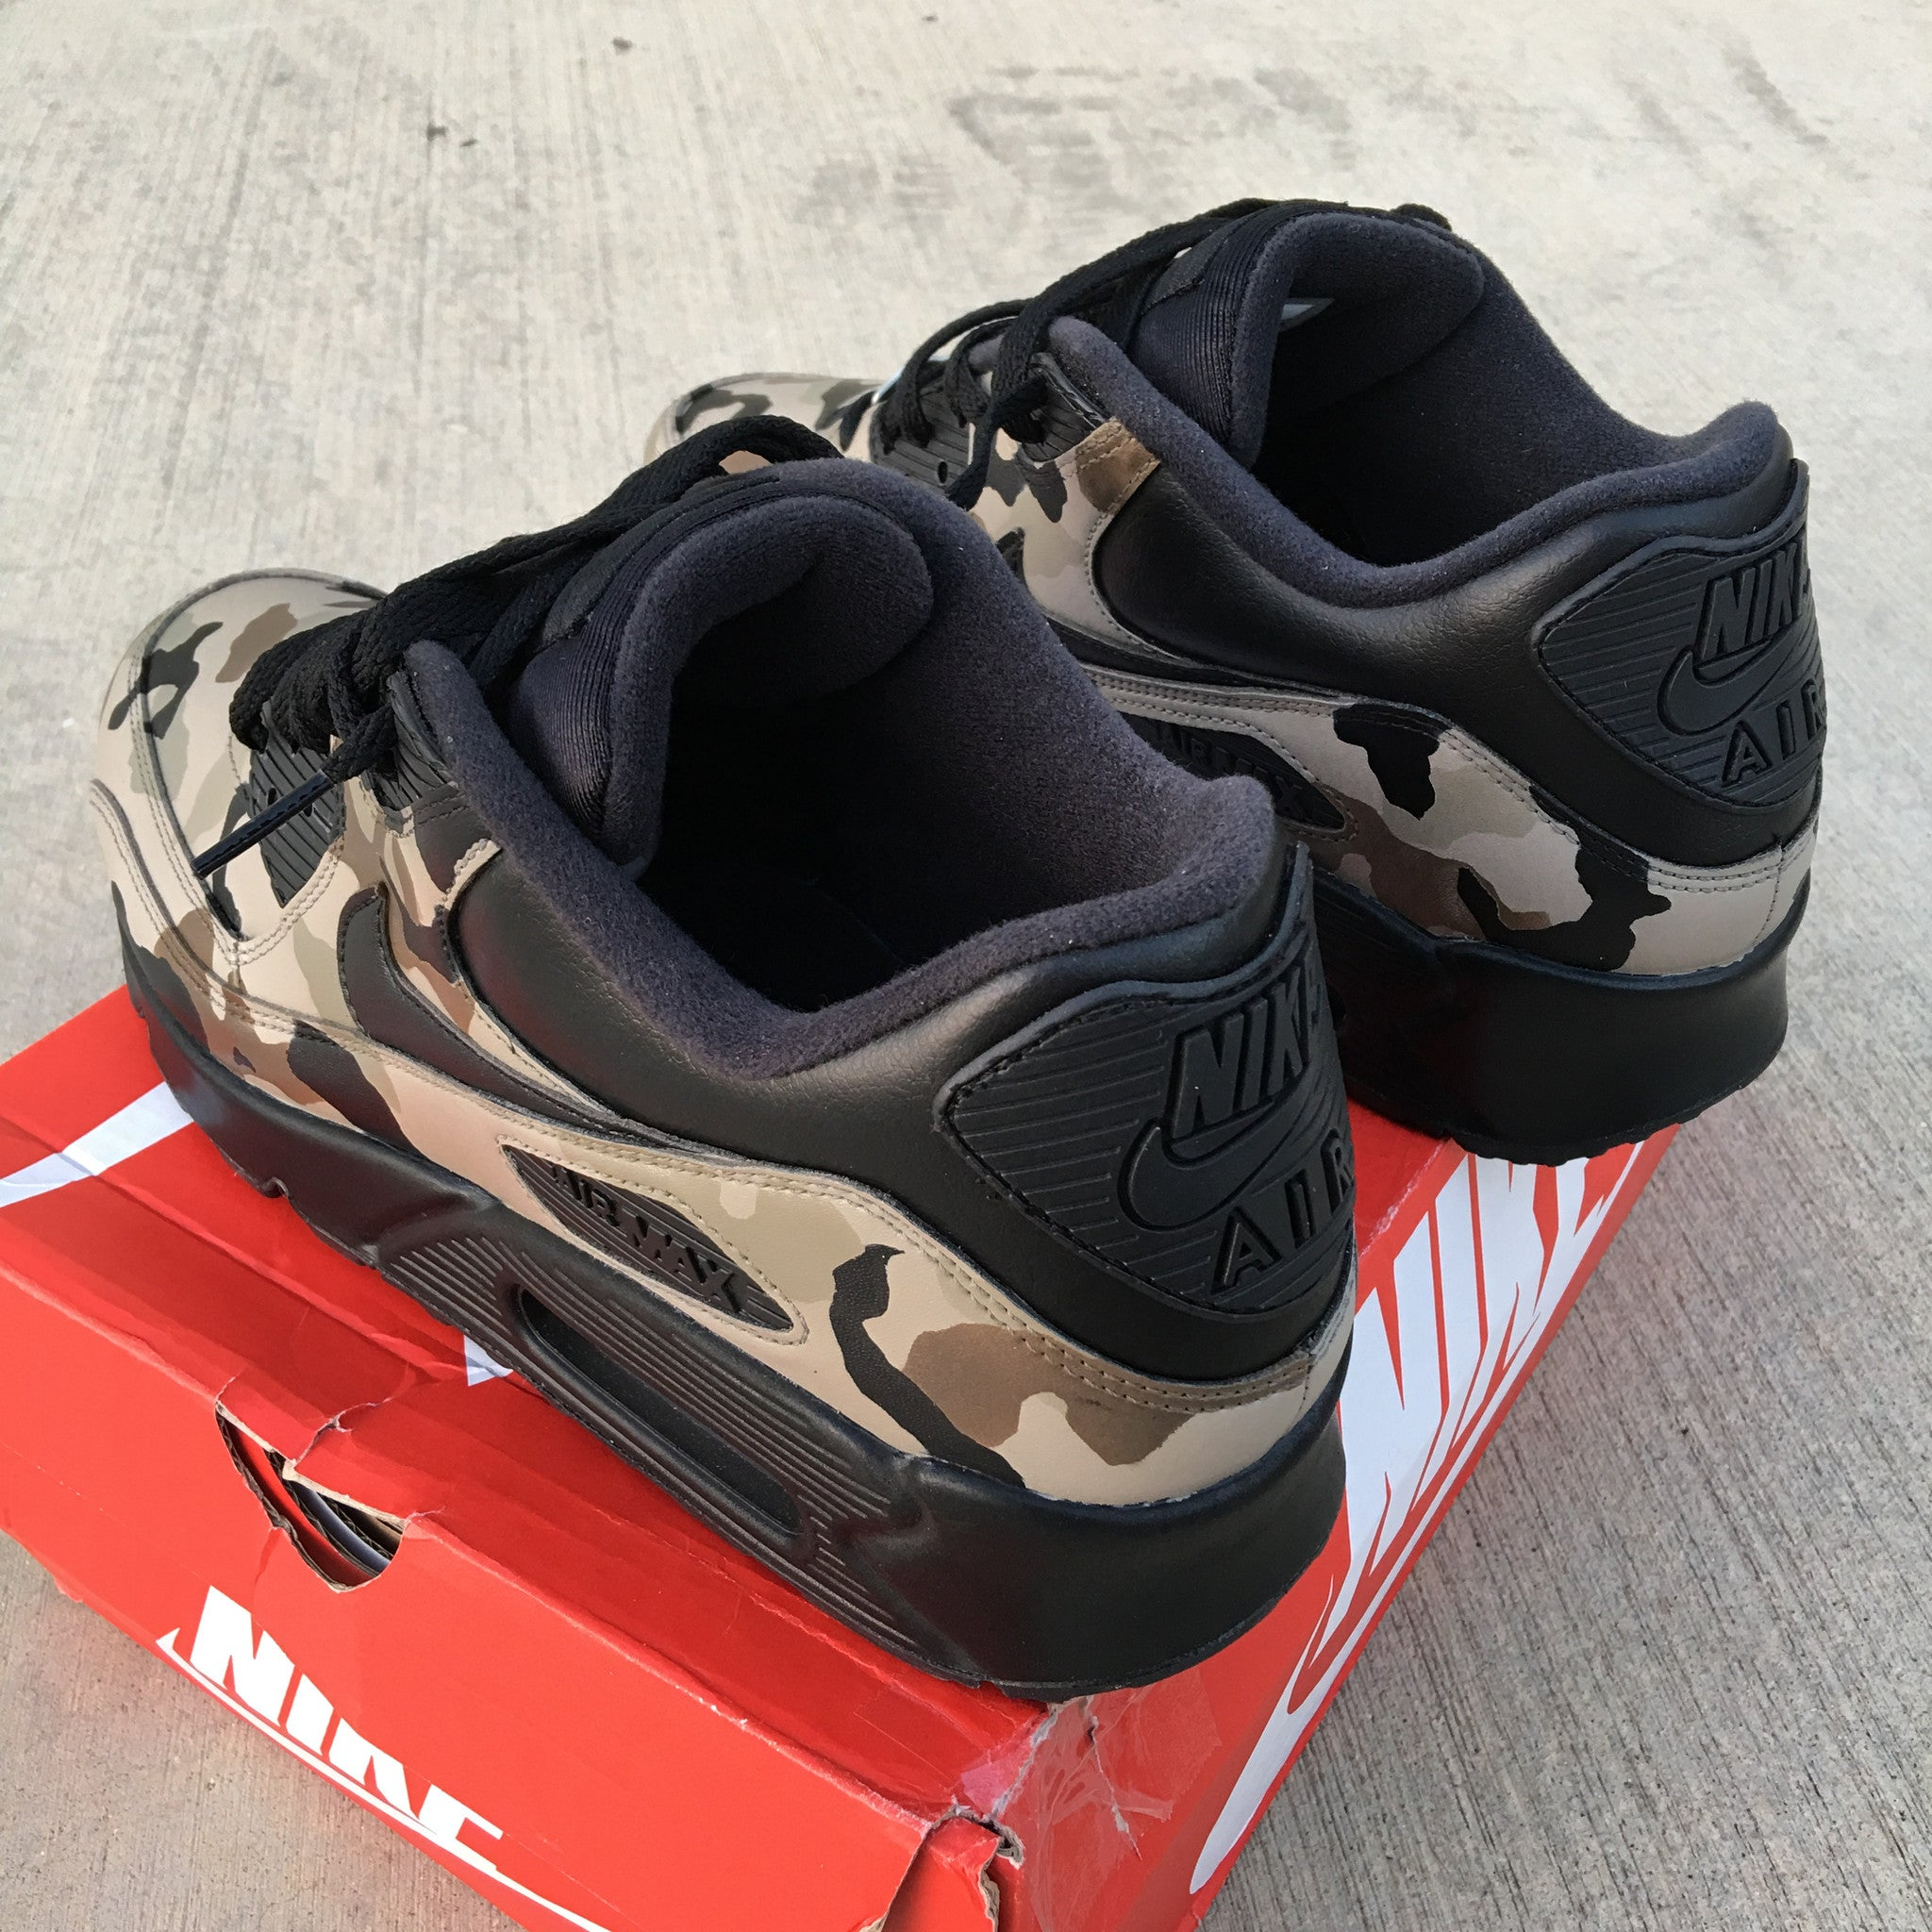 usa air max nike sneakers custom painted da41d 56328